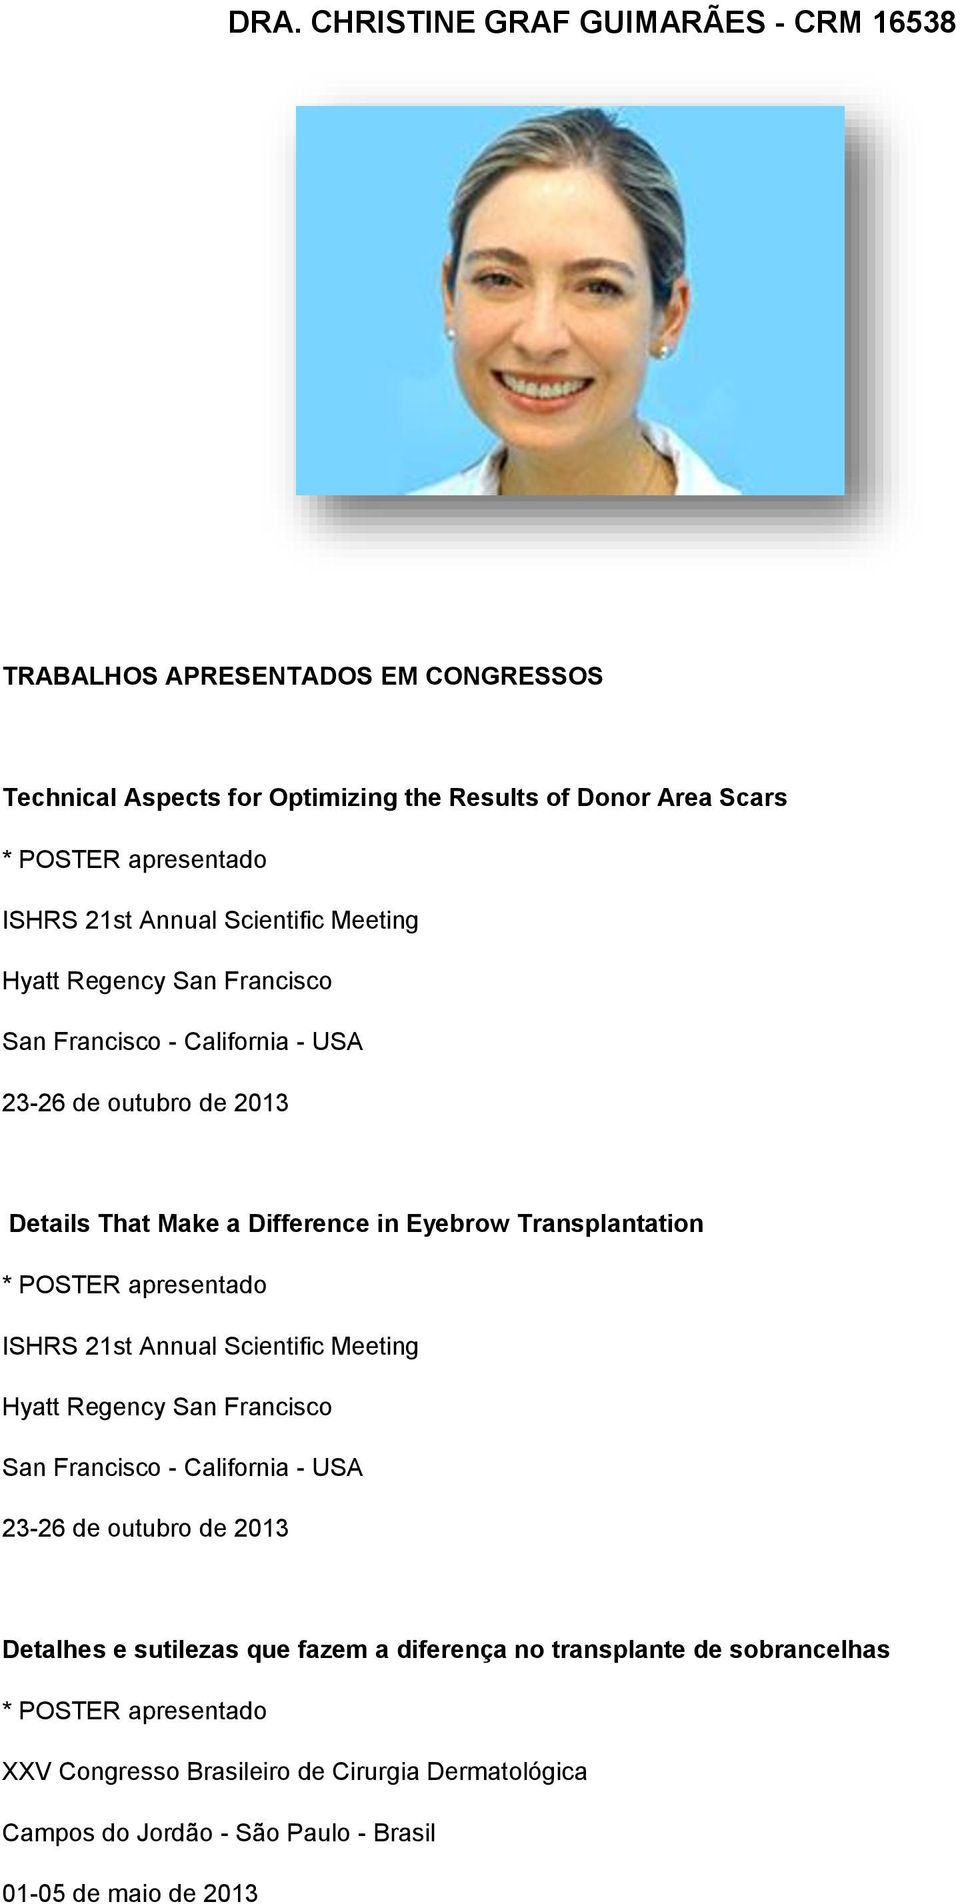 Transplantation ISHRS 21st Annual Scientific Meeting Hyatt Regency San Francisco San Francisco - California - USA 23-26 de outubro de 2013 Detalhes e